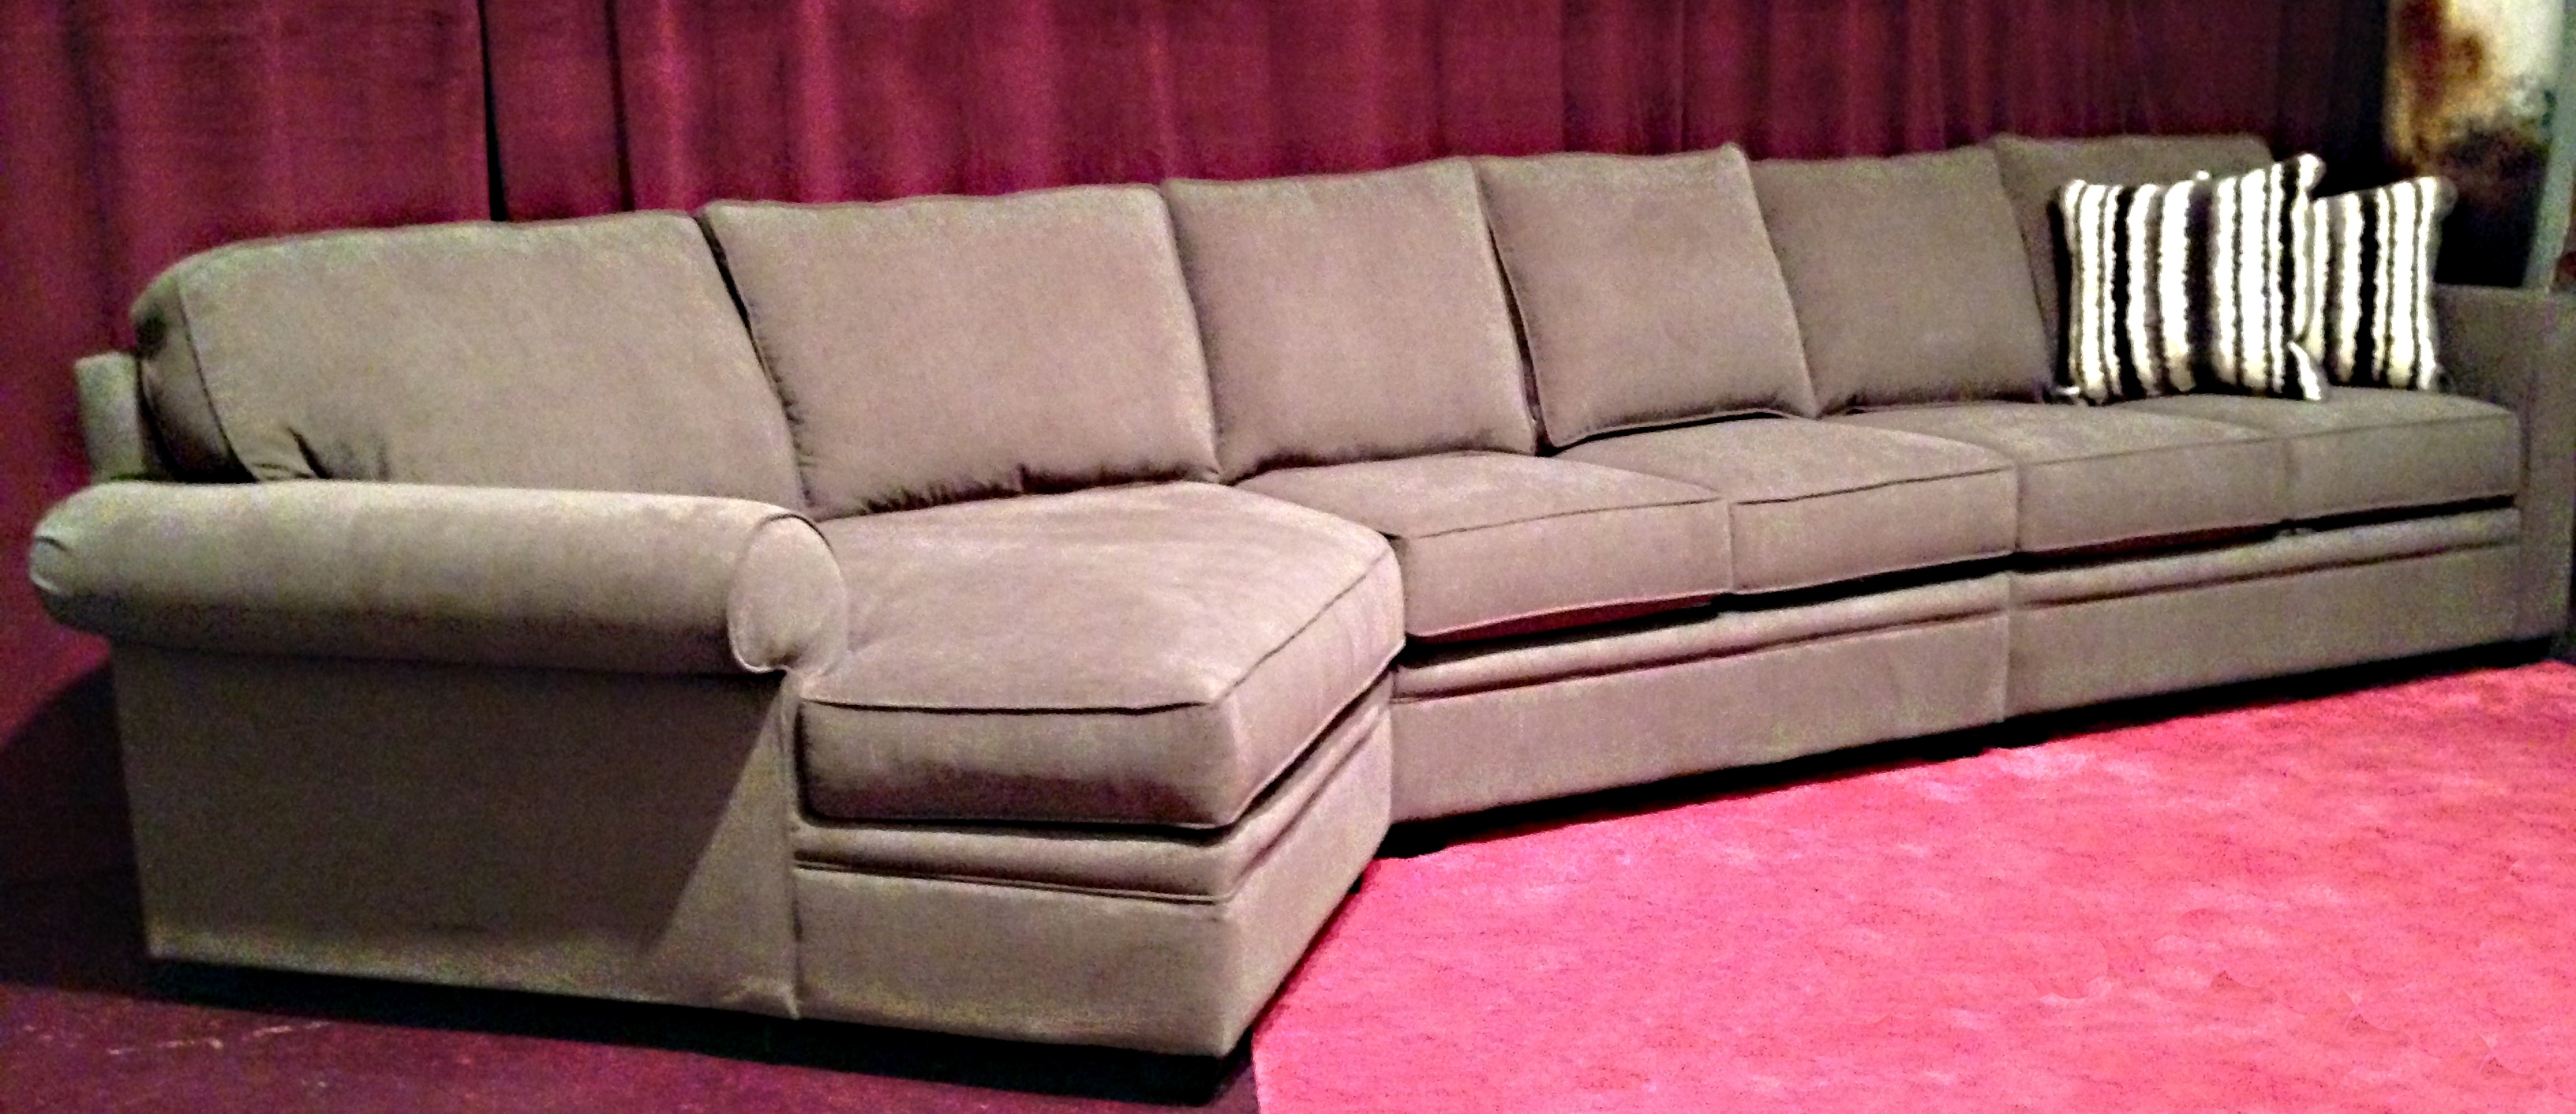 Wonderful Long Sectional Sofas 50 On Used Sectional Sofas Sale With For Used Sectional Sofas (Image 10 of 10)